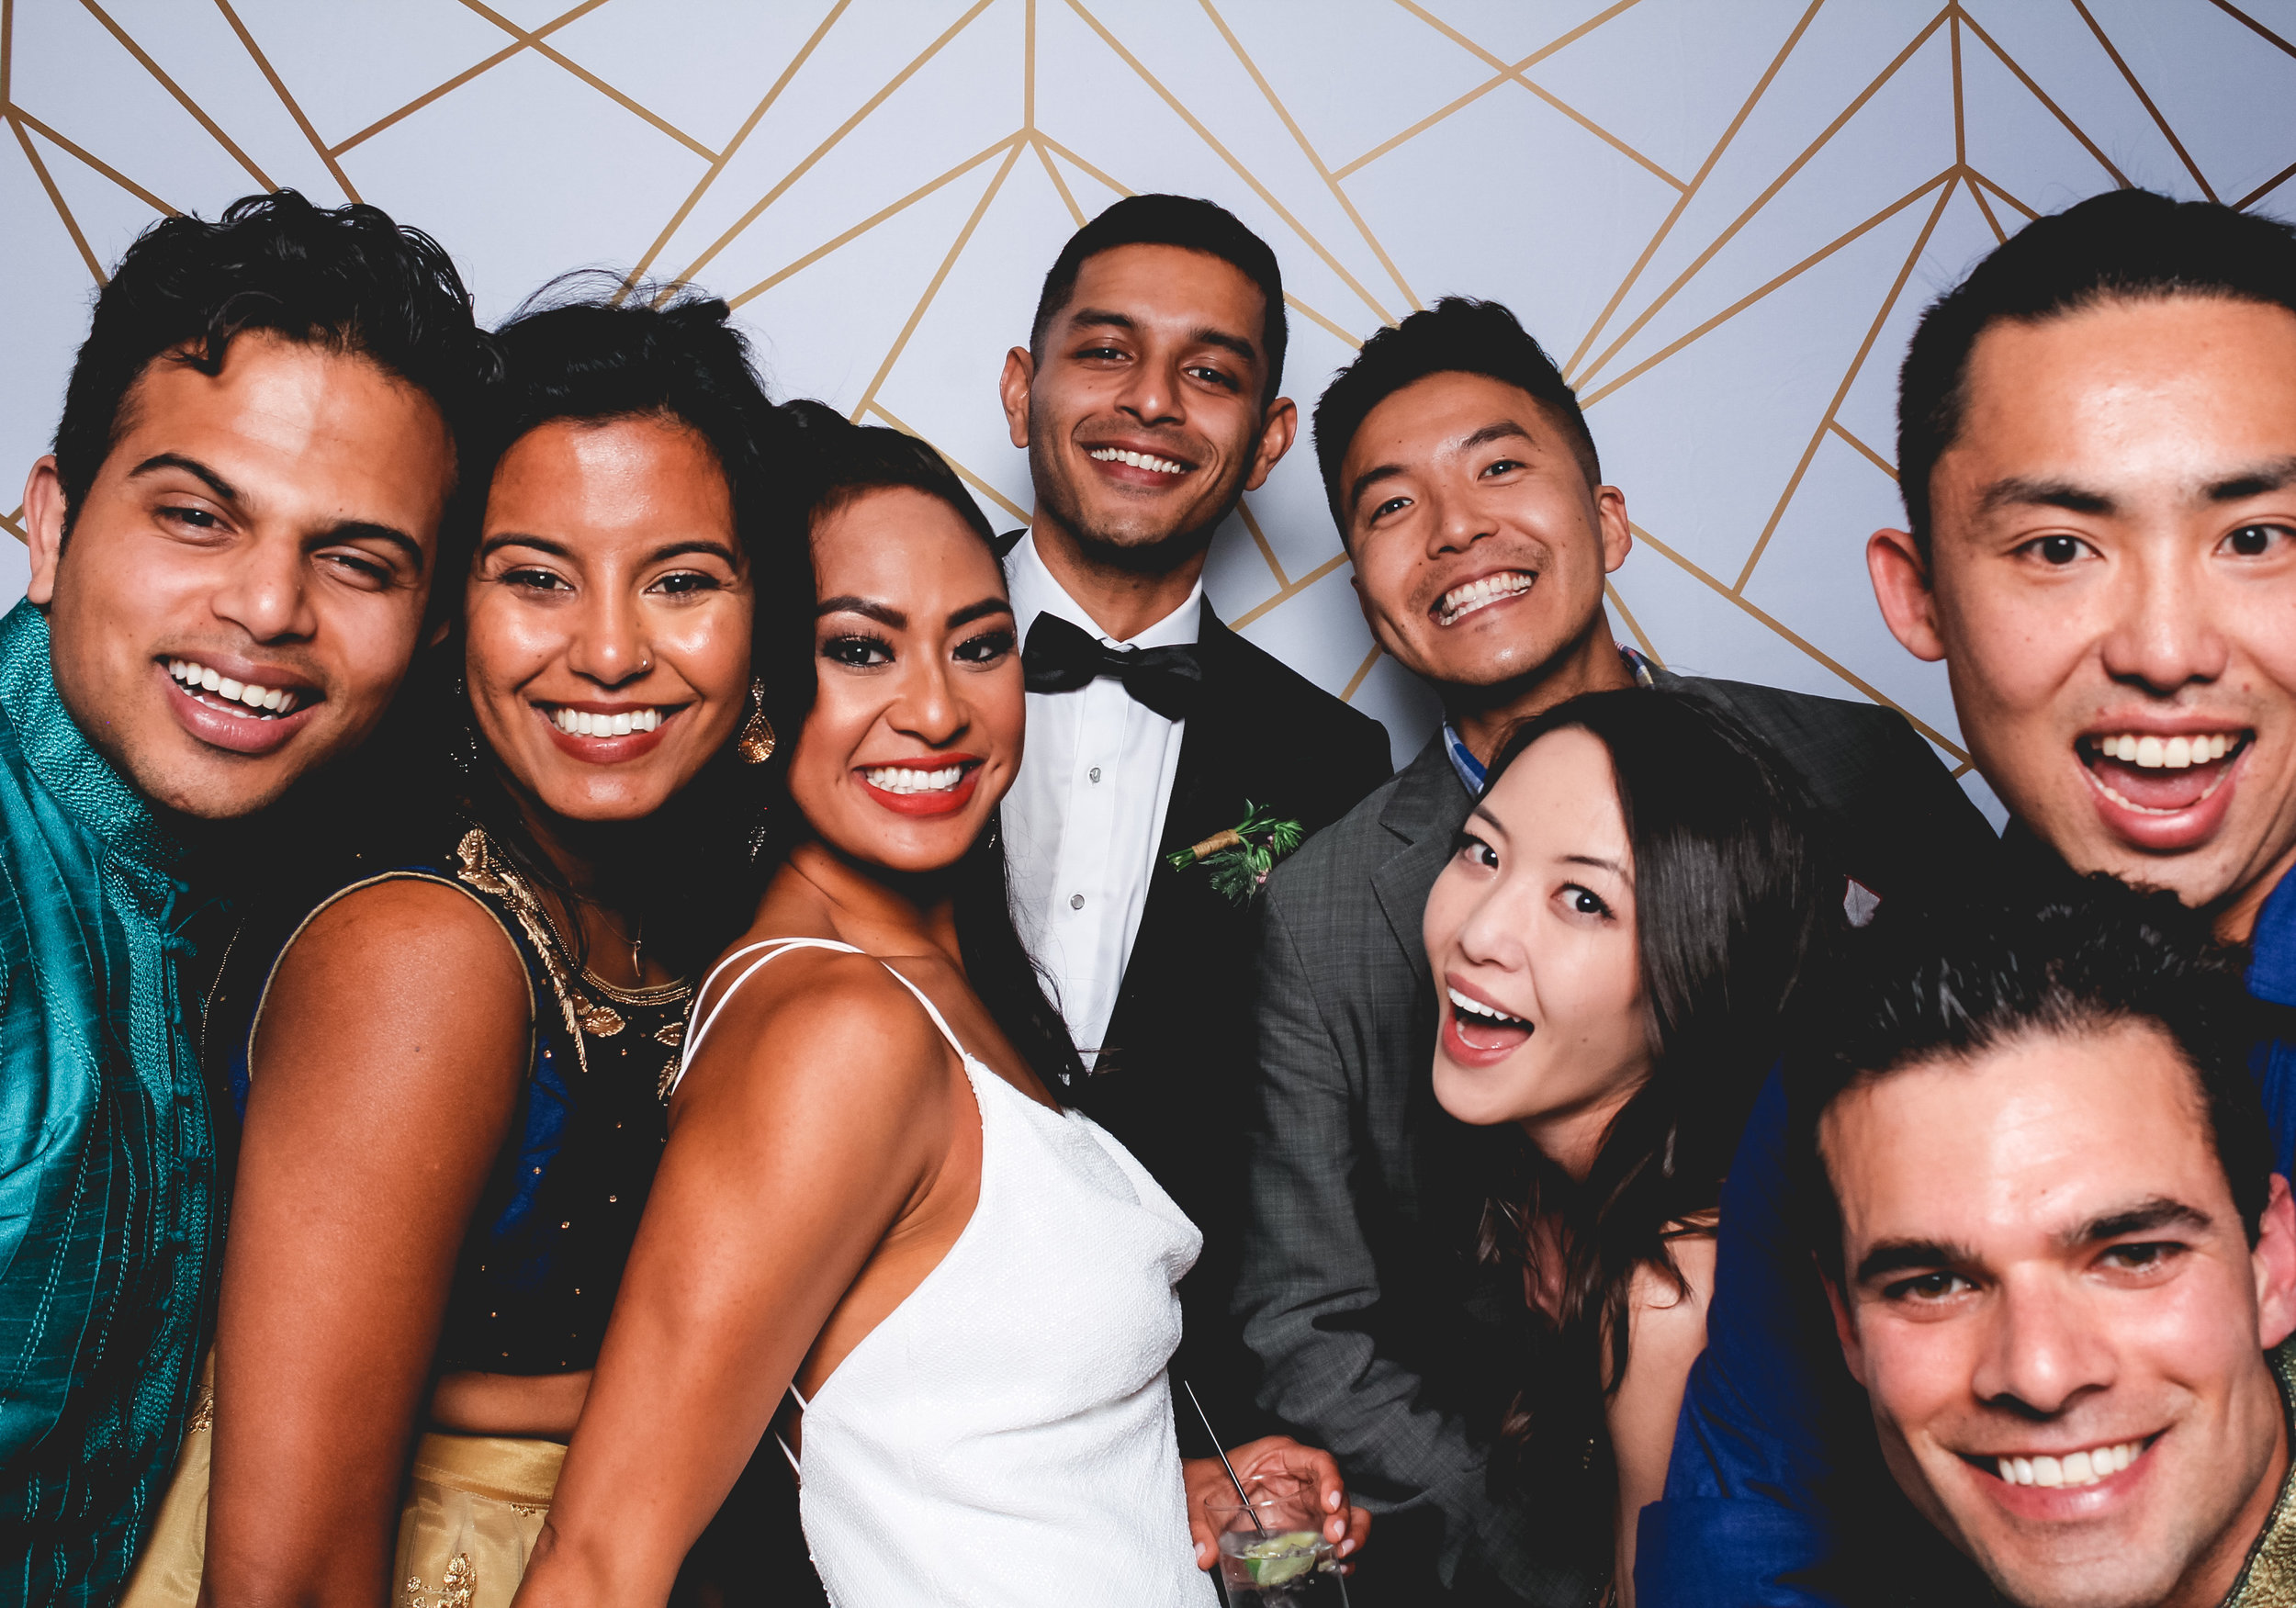 Mavian & Raunak | May 26, 2019